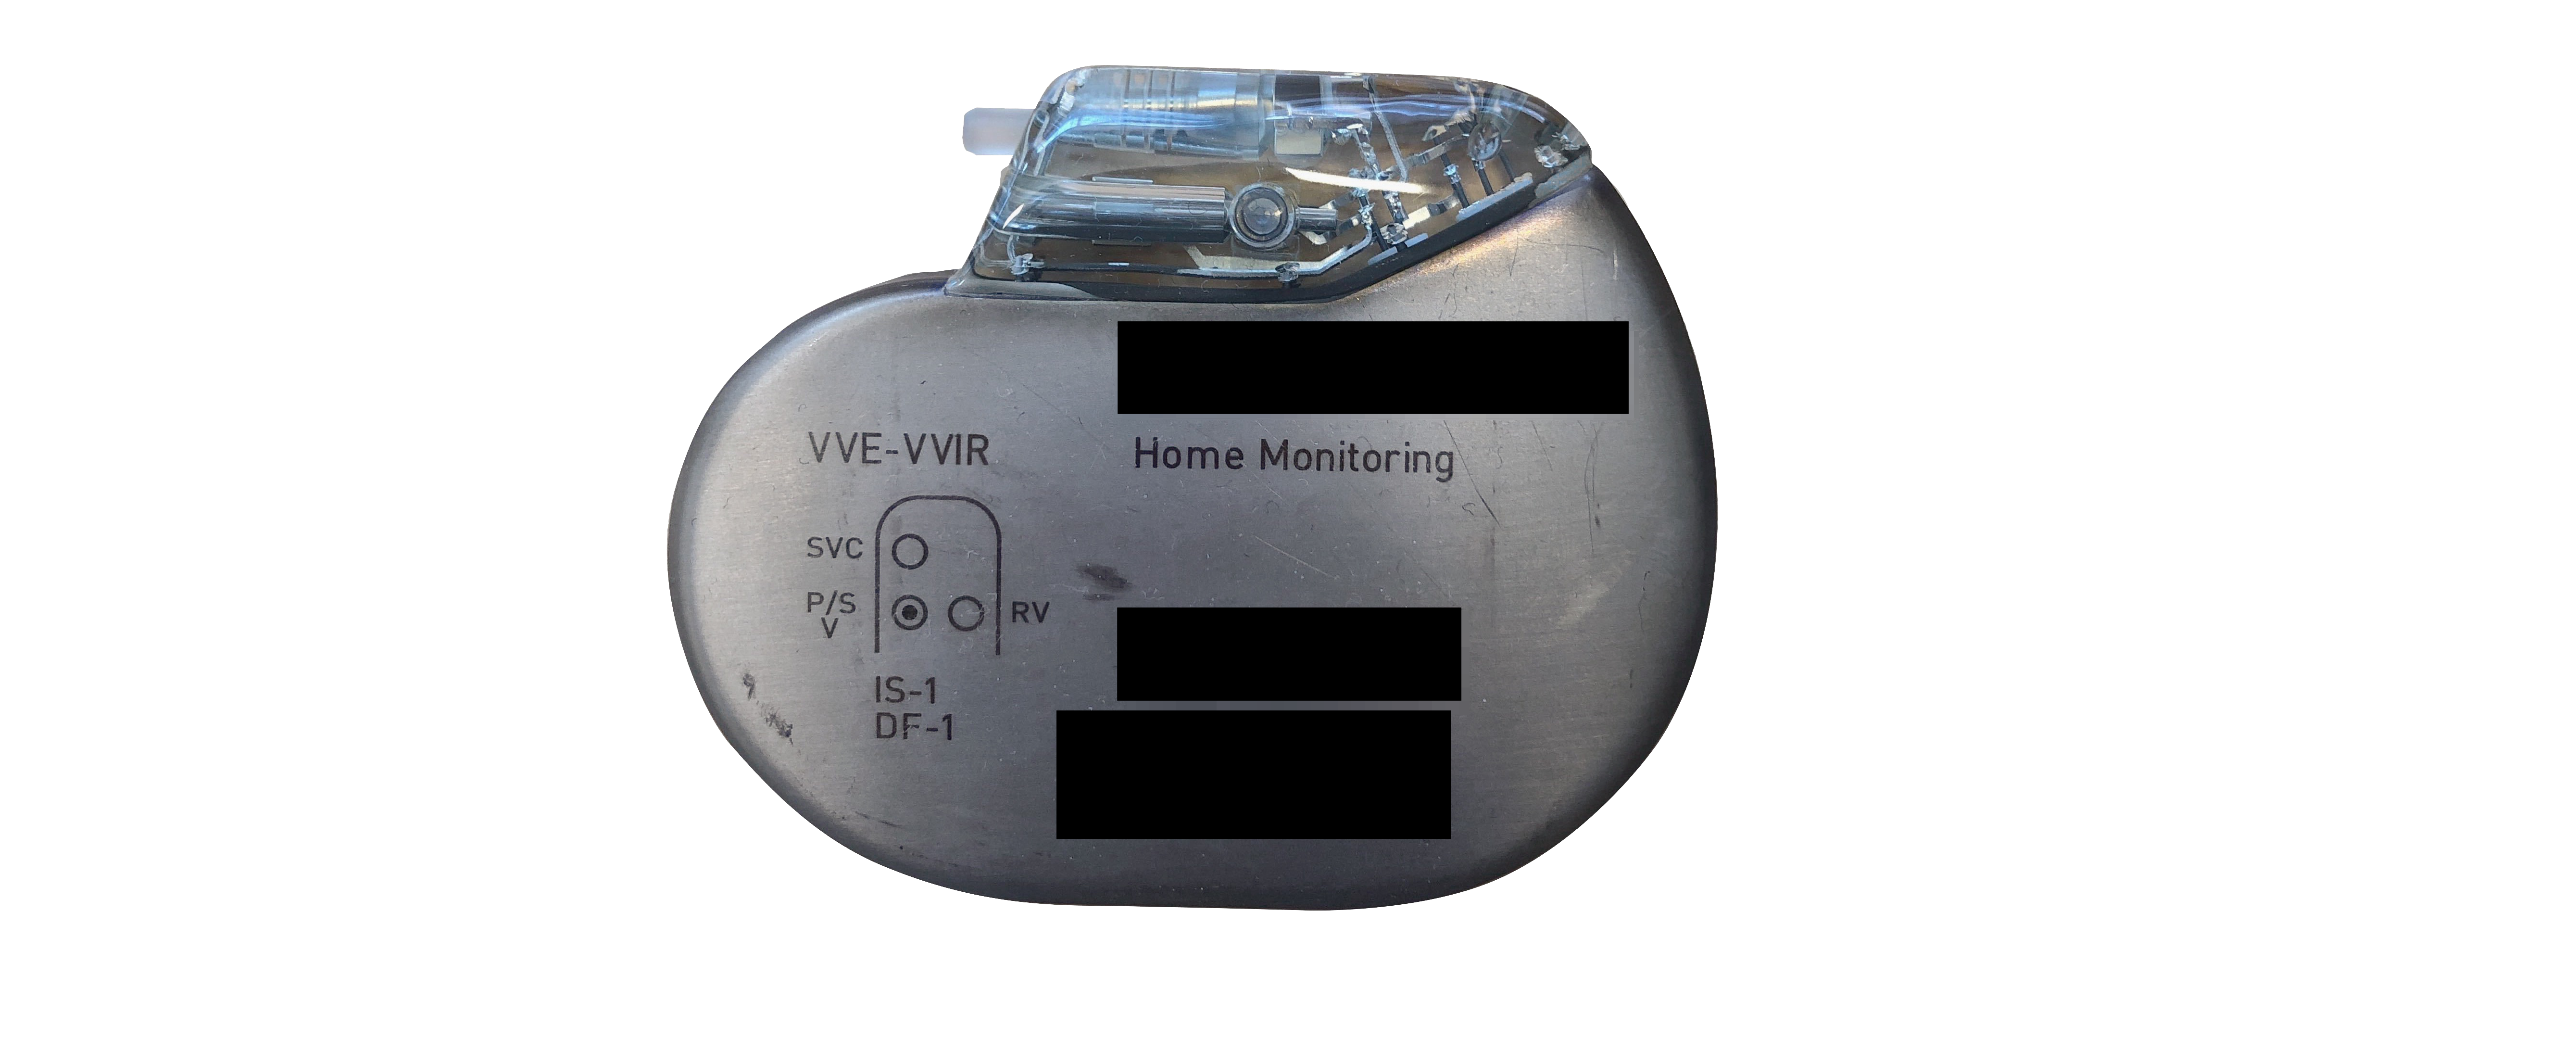 Figure 1: Picture of the pacemaker in SINTEF's lab